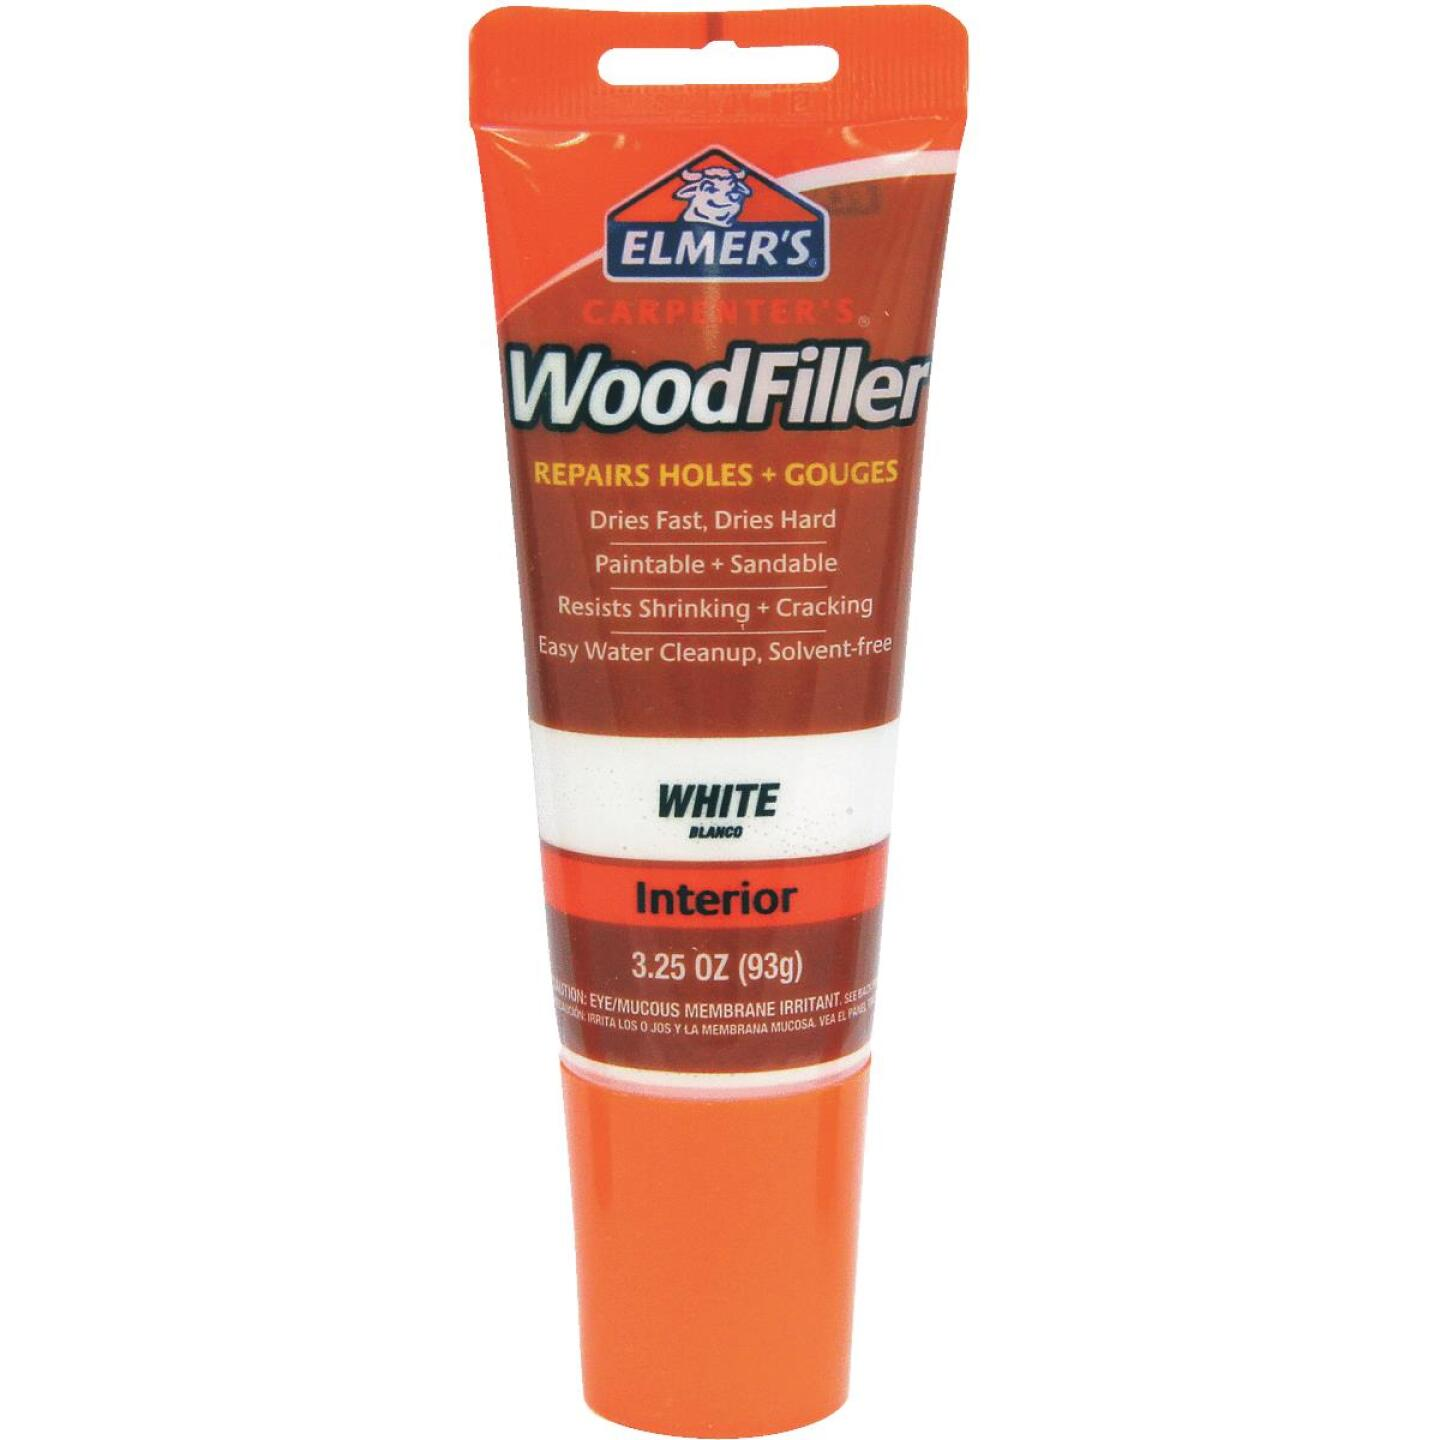 Elmer's Carpenter's White 3.25 Oz. Wood Filler Image 1